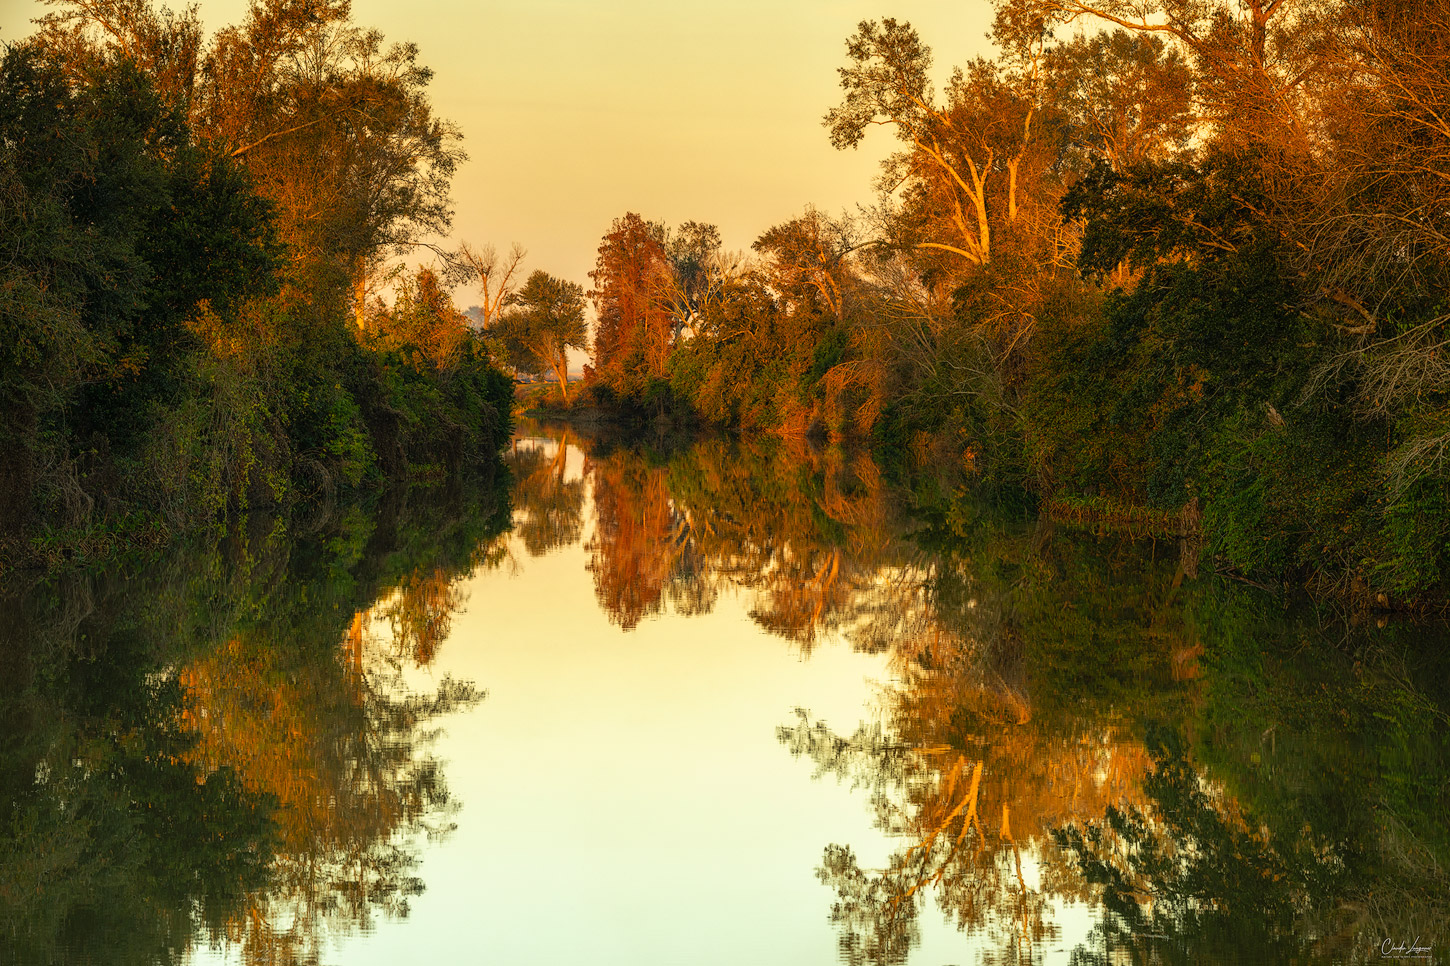 View of Bayou Lafourche river in Louisiana at sunset.